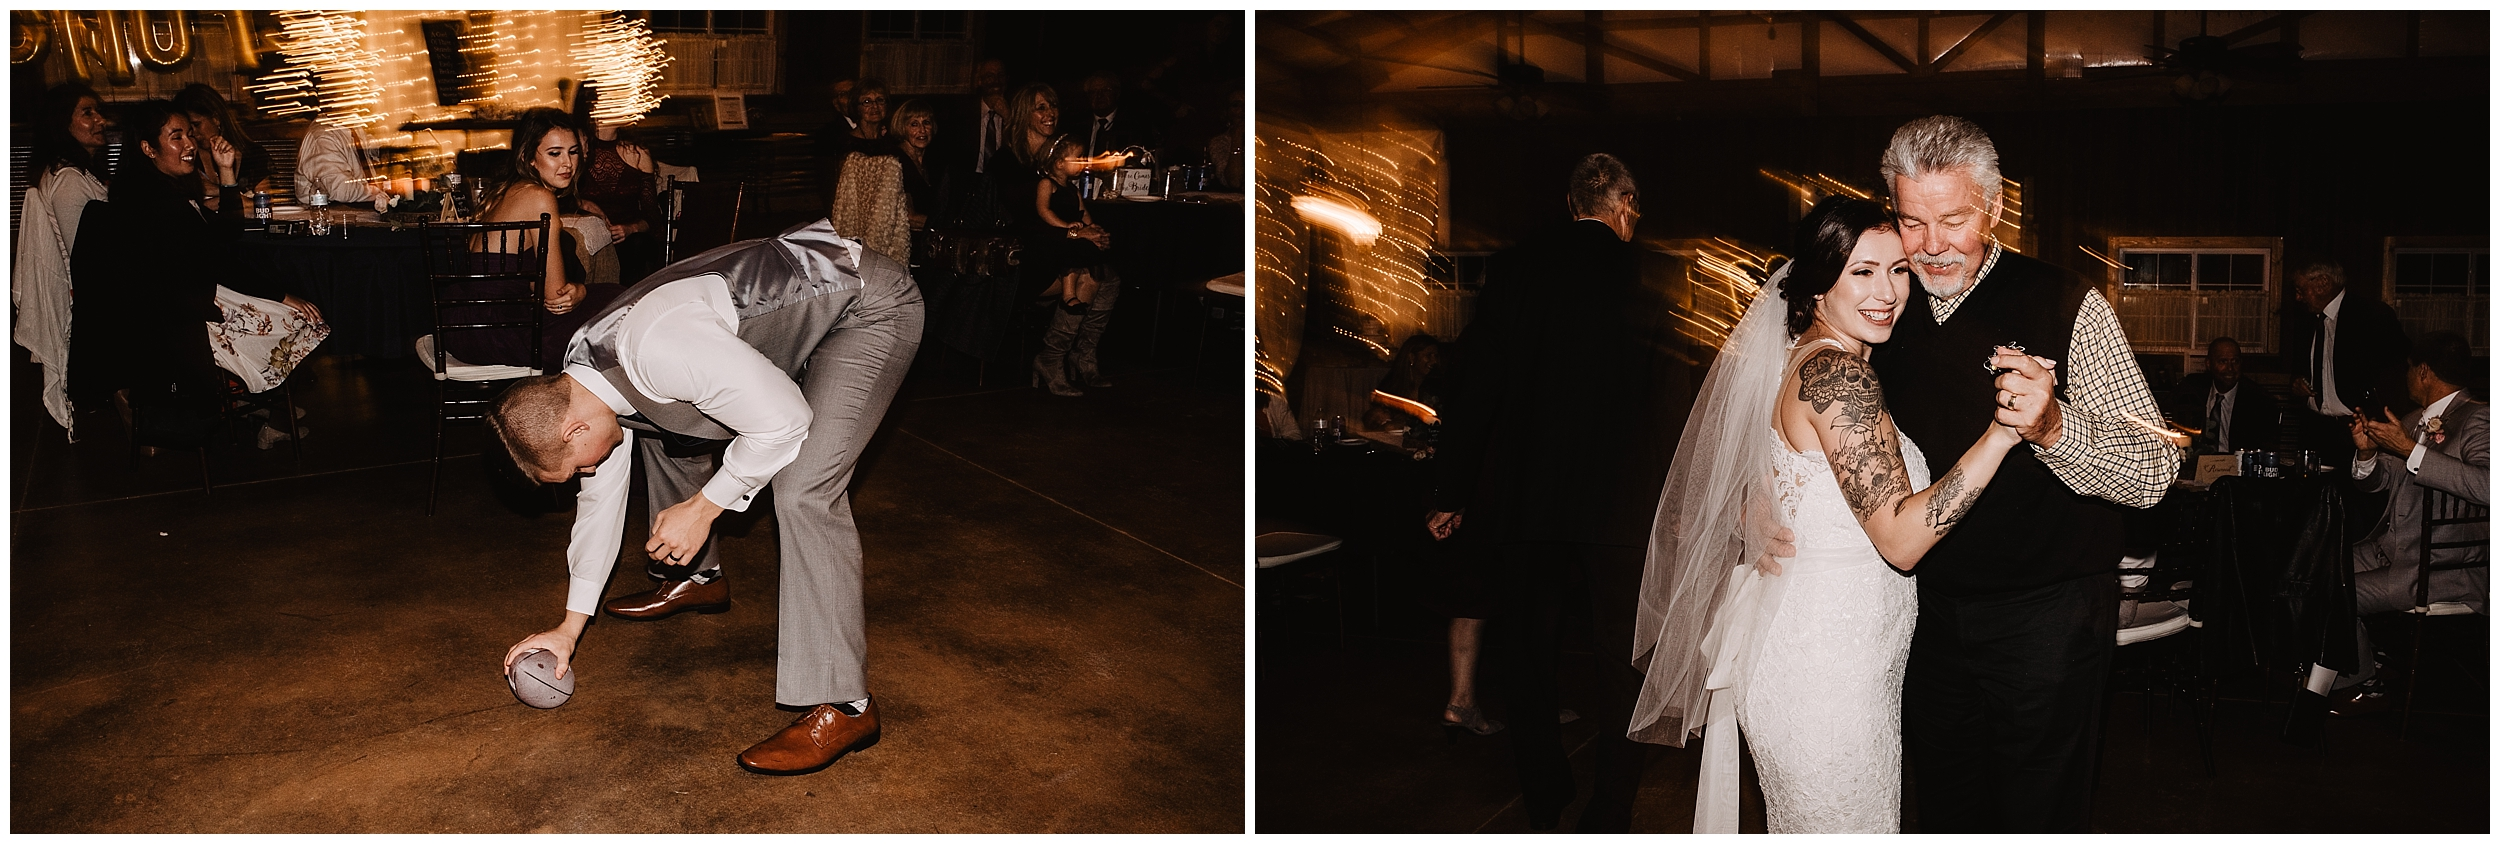 rustic timbers viola kansas oklahoma wedding photographer champagne toast friends family reception party dancing music kids